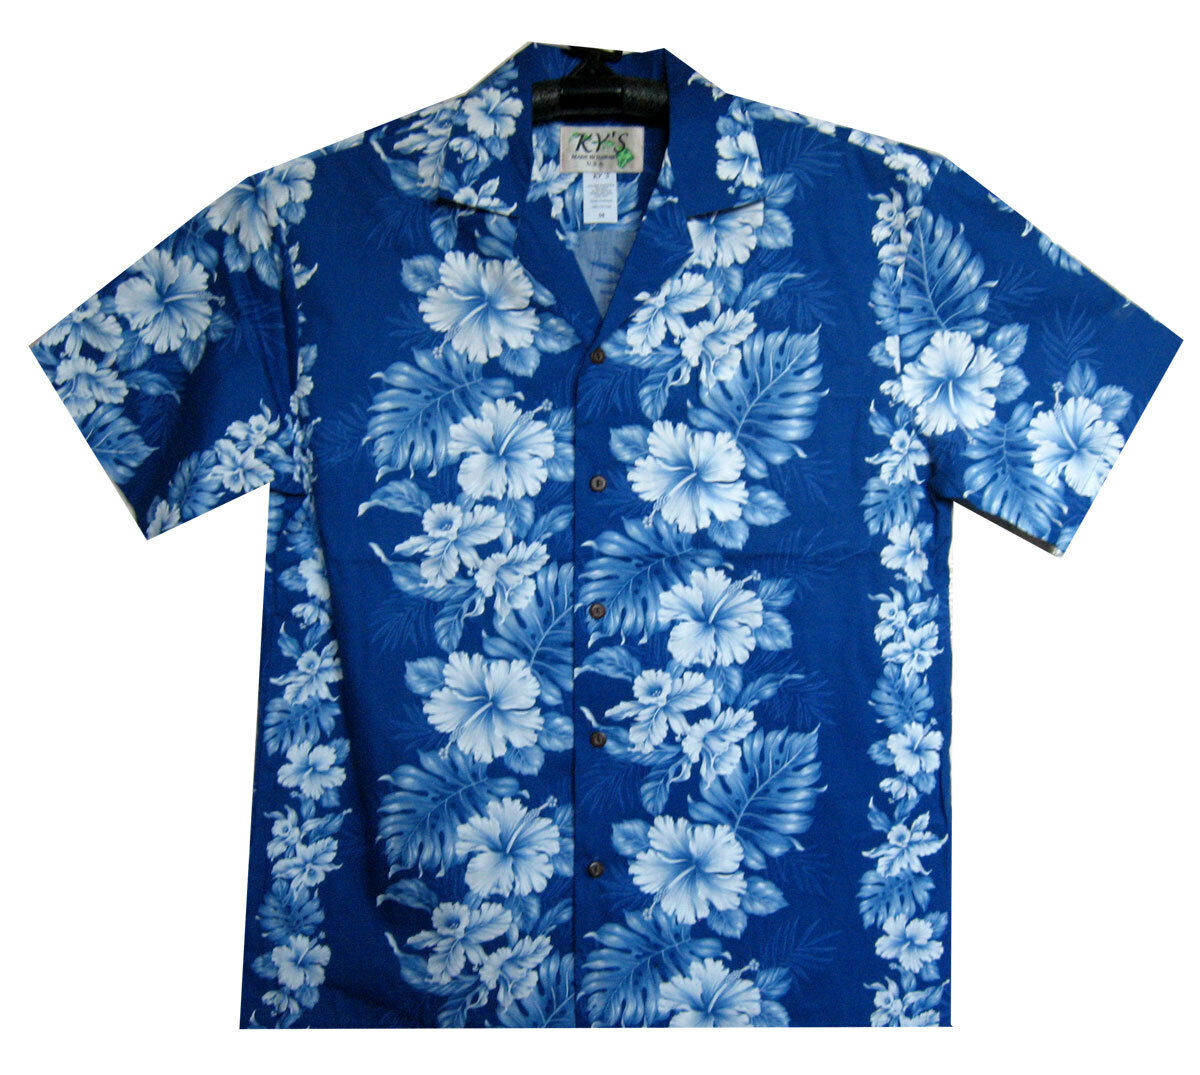 KY`S Original Hawaiian Shirt, Hawaiihemd, Batik black o. blue S-4XL